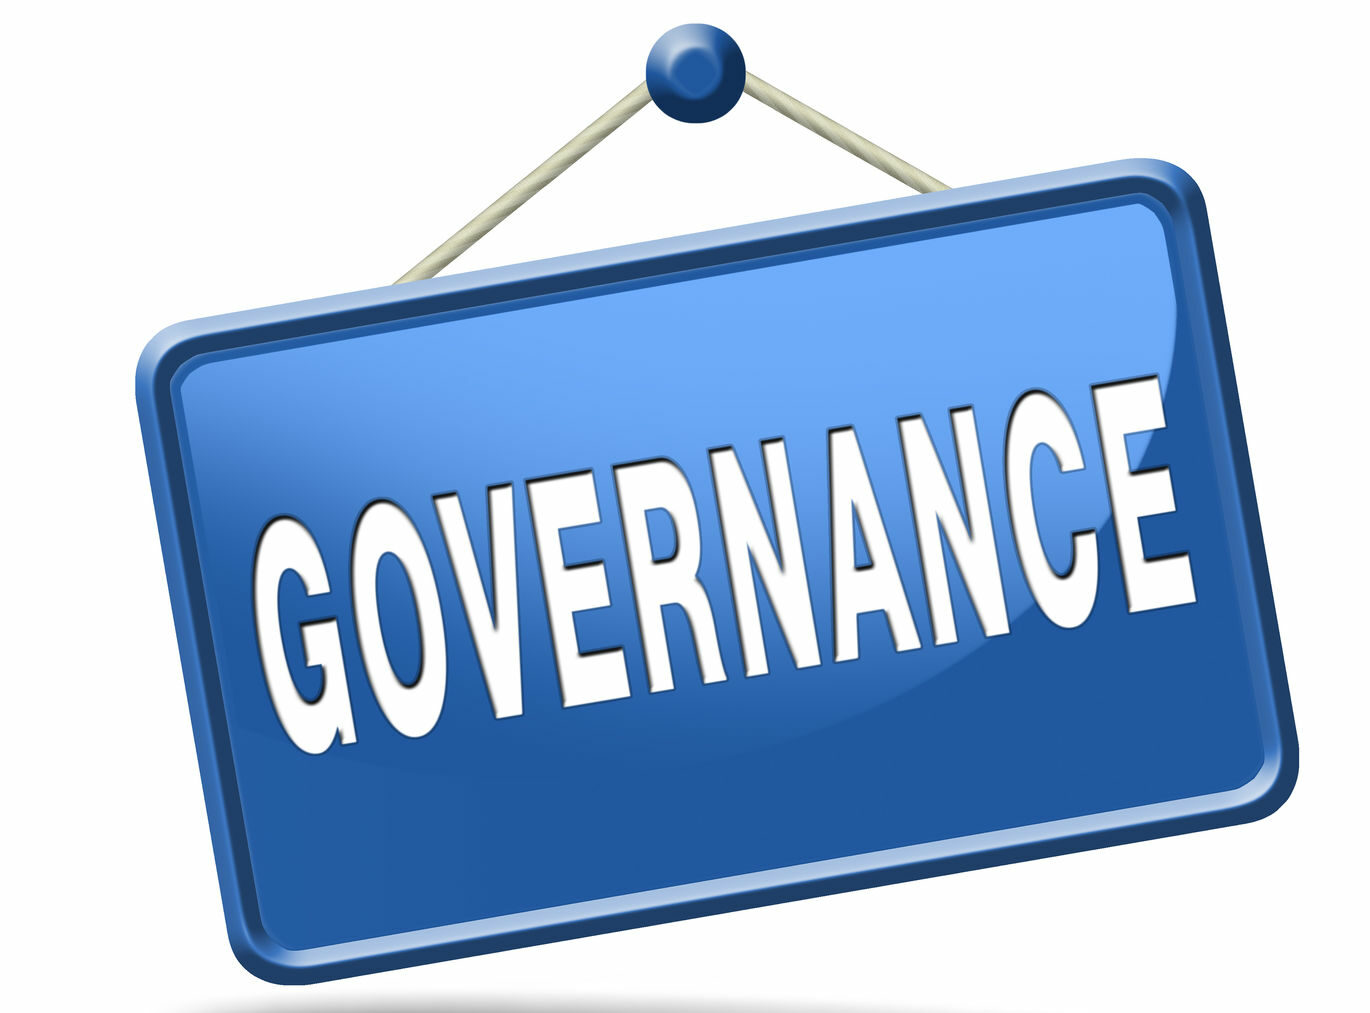 Governance not based on personal relationships